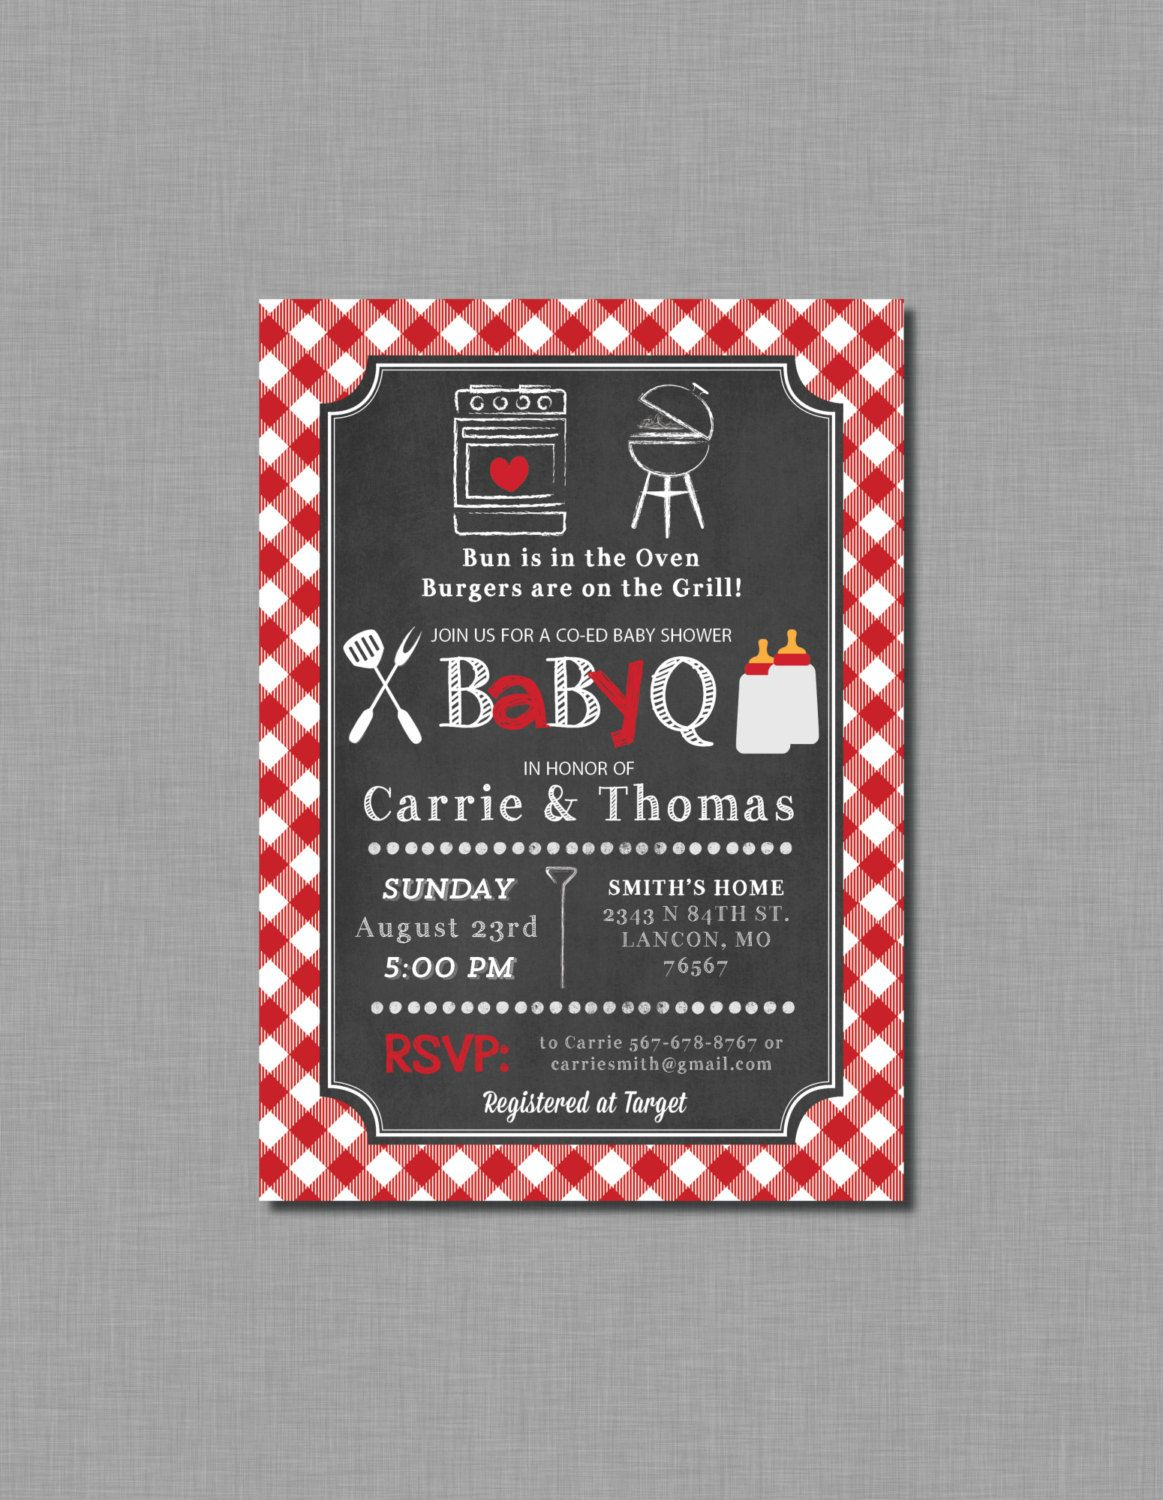 Red Baby Q invitations baby shower gender neutral coed bbq | Shower ...